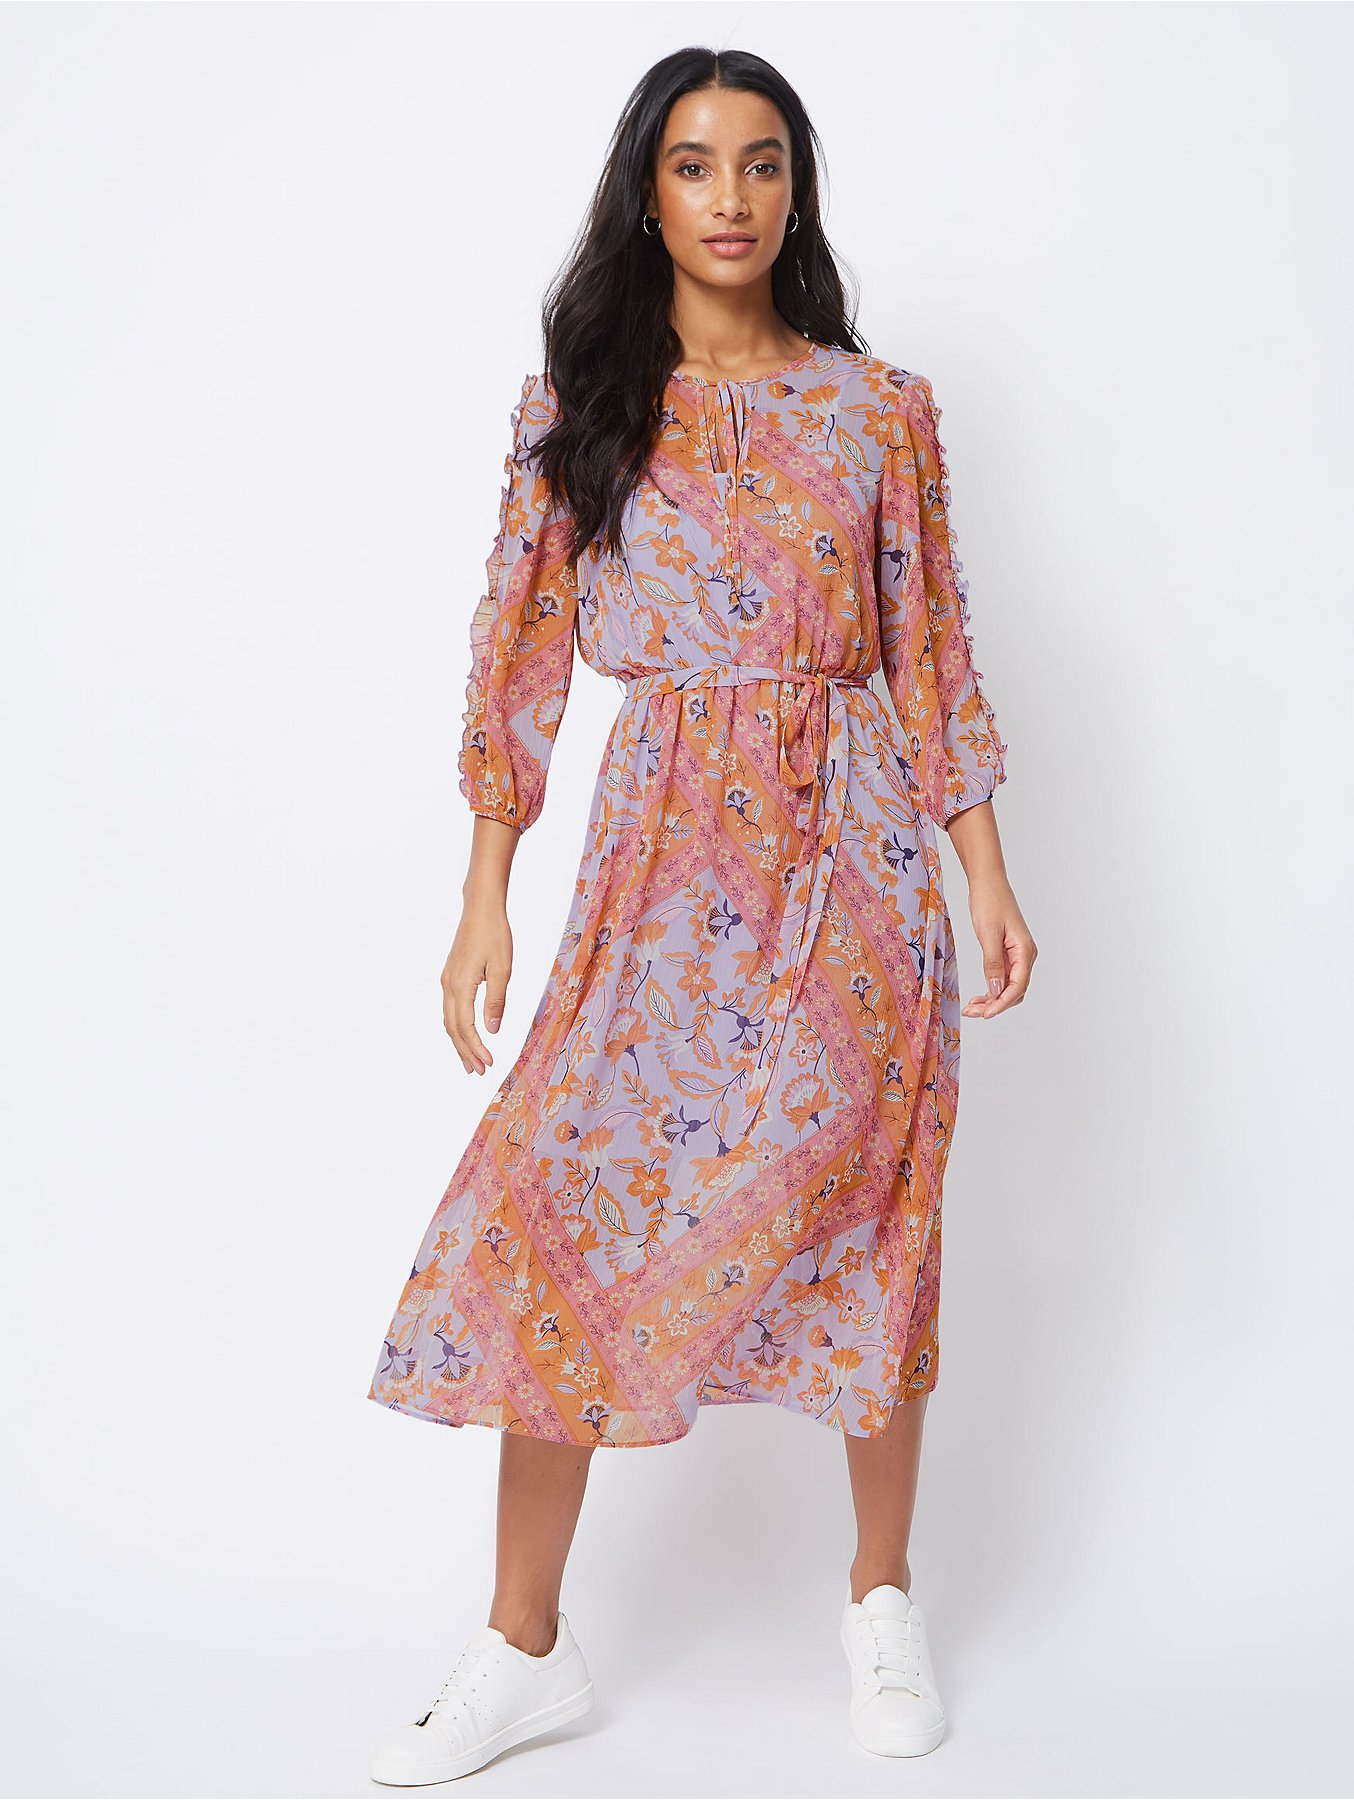 bafae7a96 Long Sleeve Floral Printed Elastic Waist Midi Dress With Lining | Saddha